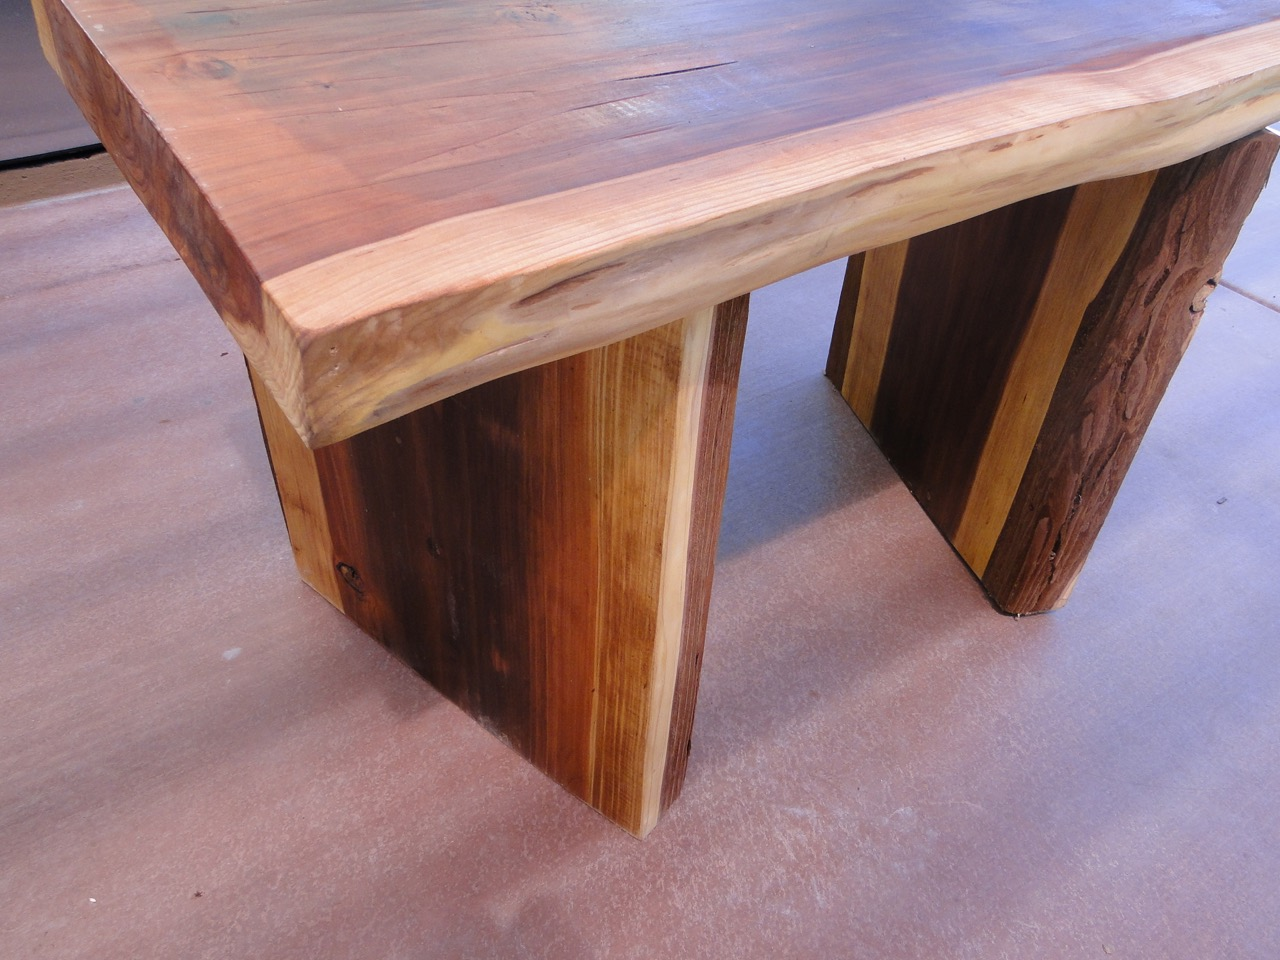 A1 Stump Reclaimed Furniture - 049